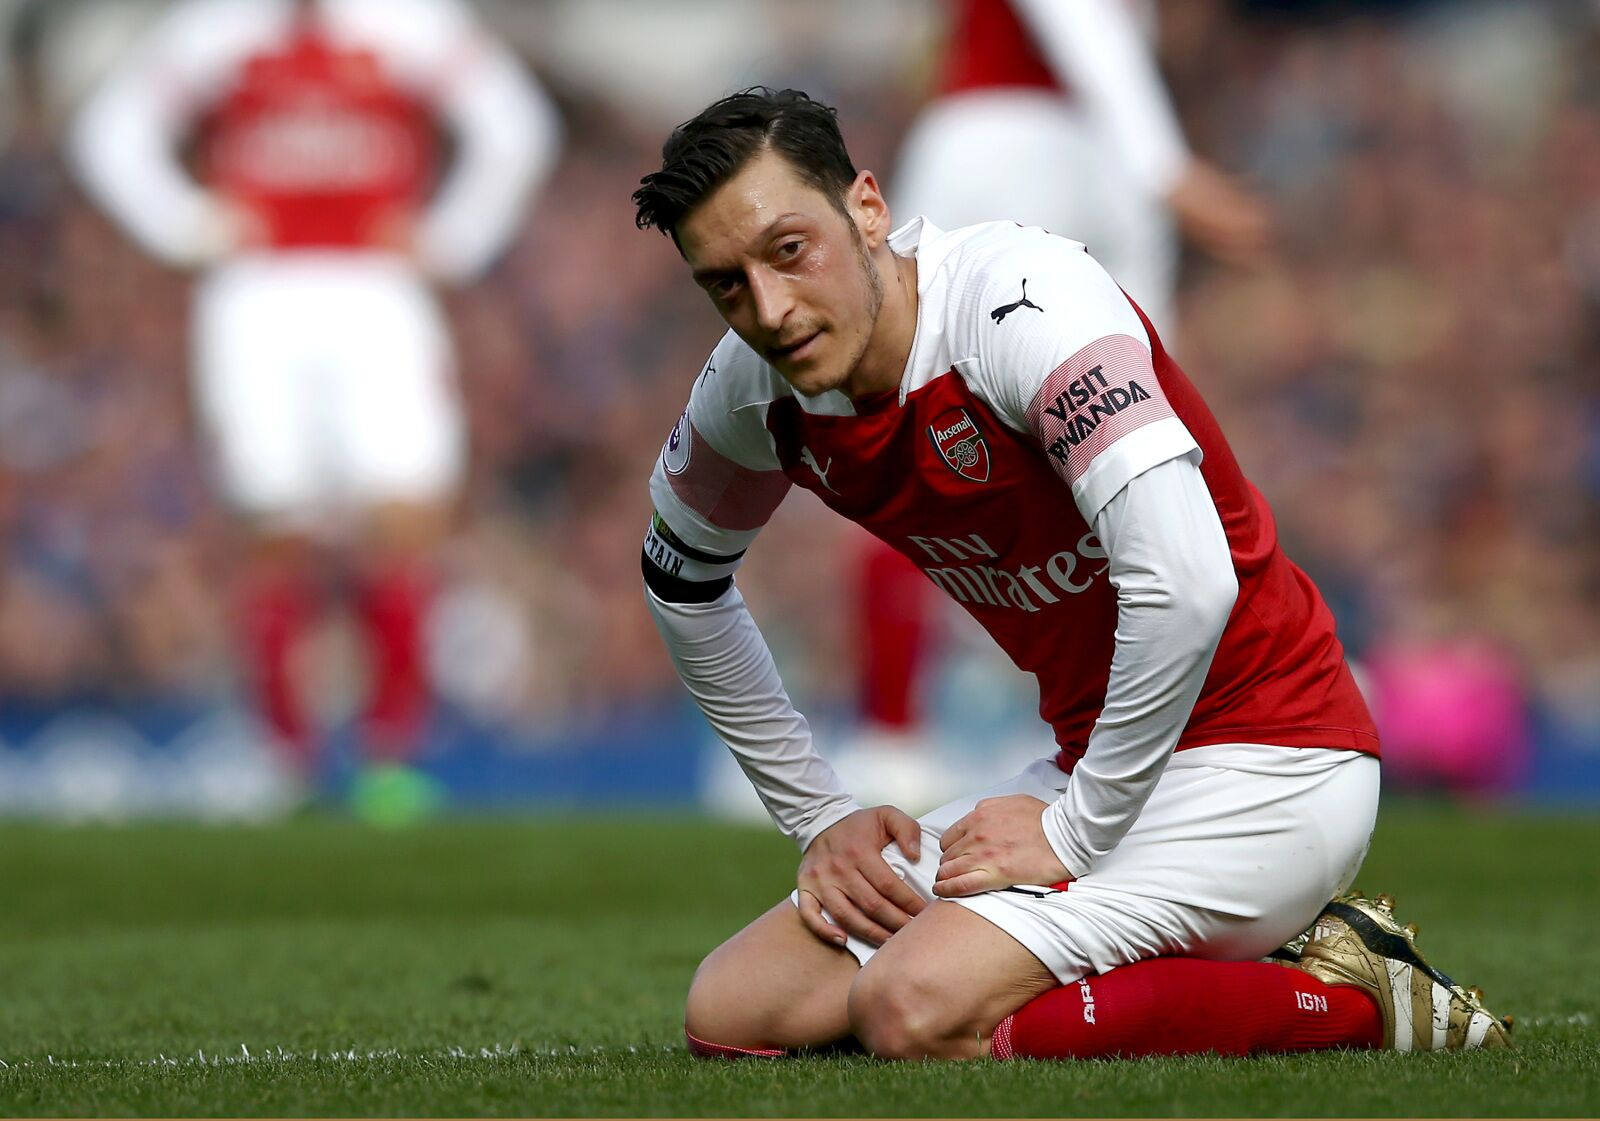 Arsenal and Mesut Ozil: I really don't want to do this again